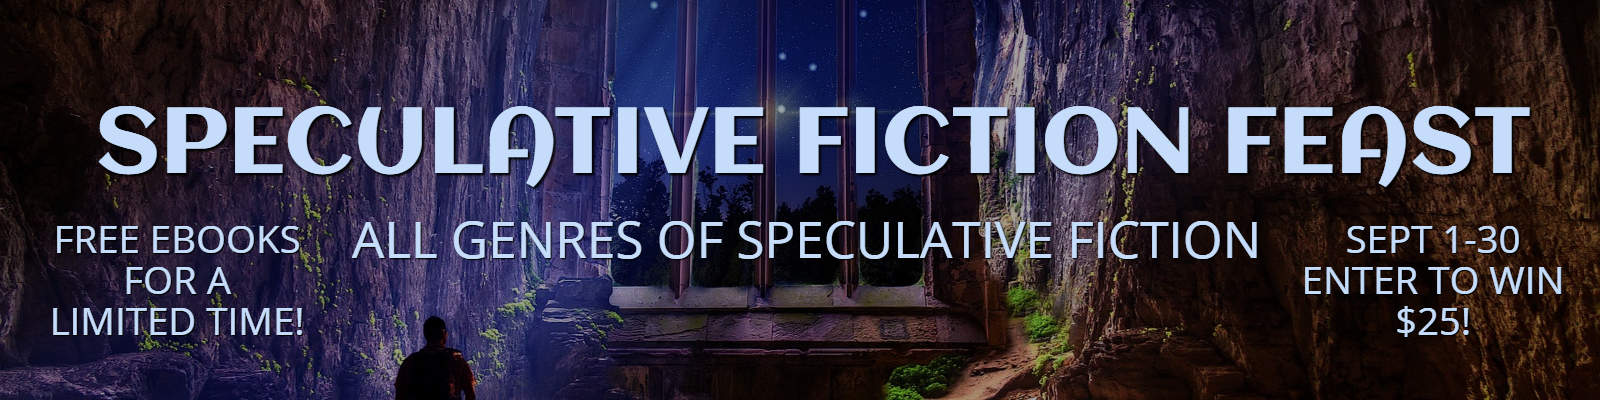 Speculative Fiction Feast